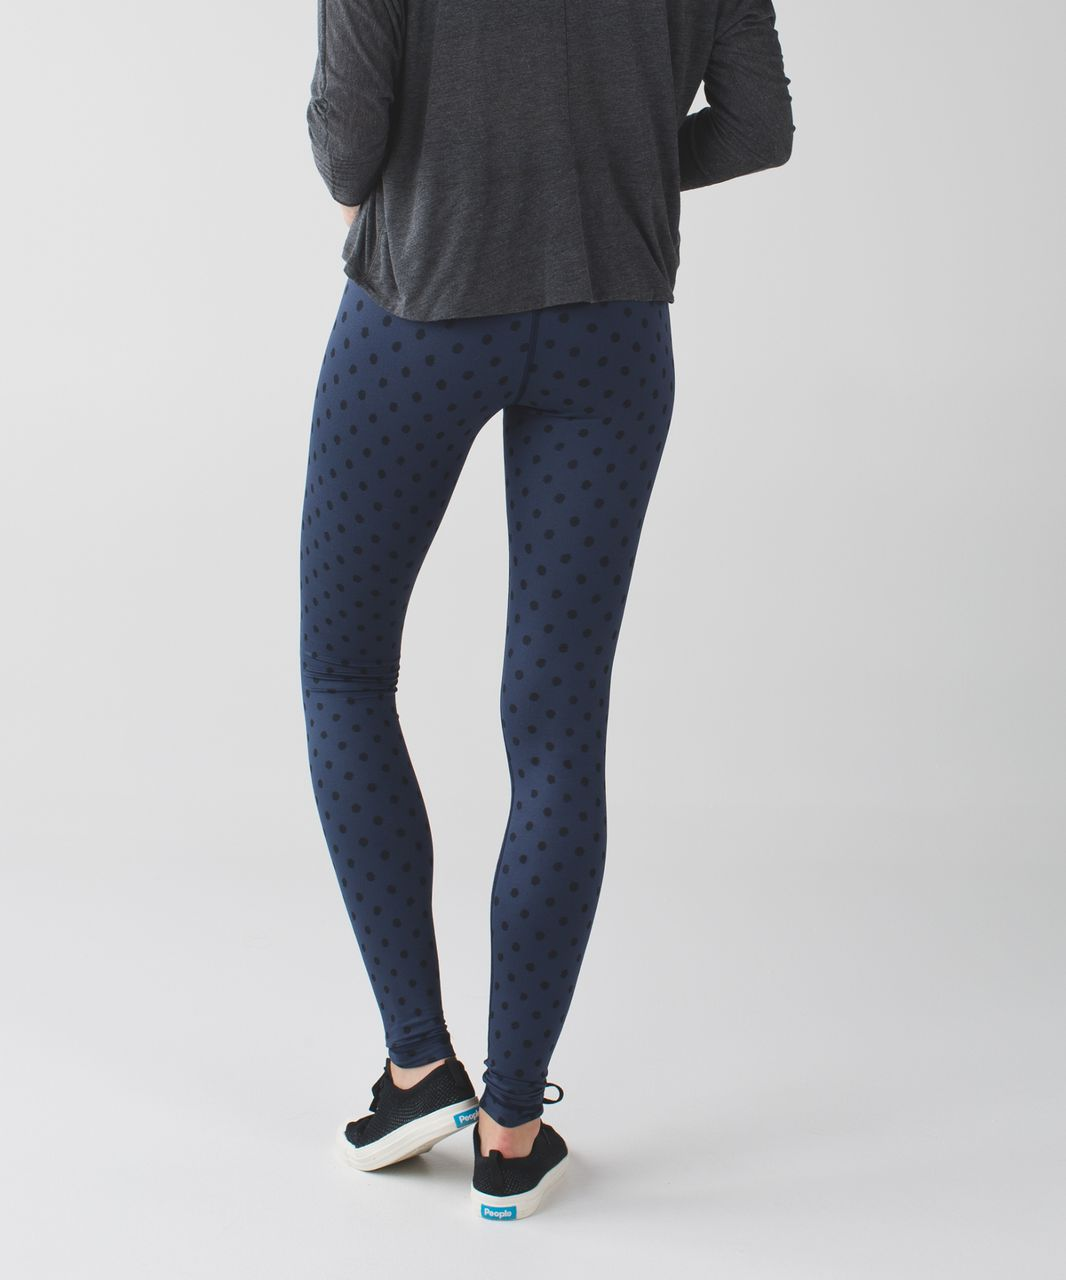 Lululemon Wunder Under Pant (Hi-Rise) *Full-On Luon - Ghost Dot Deep Navy Black